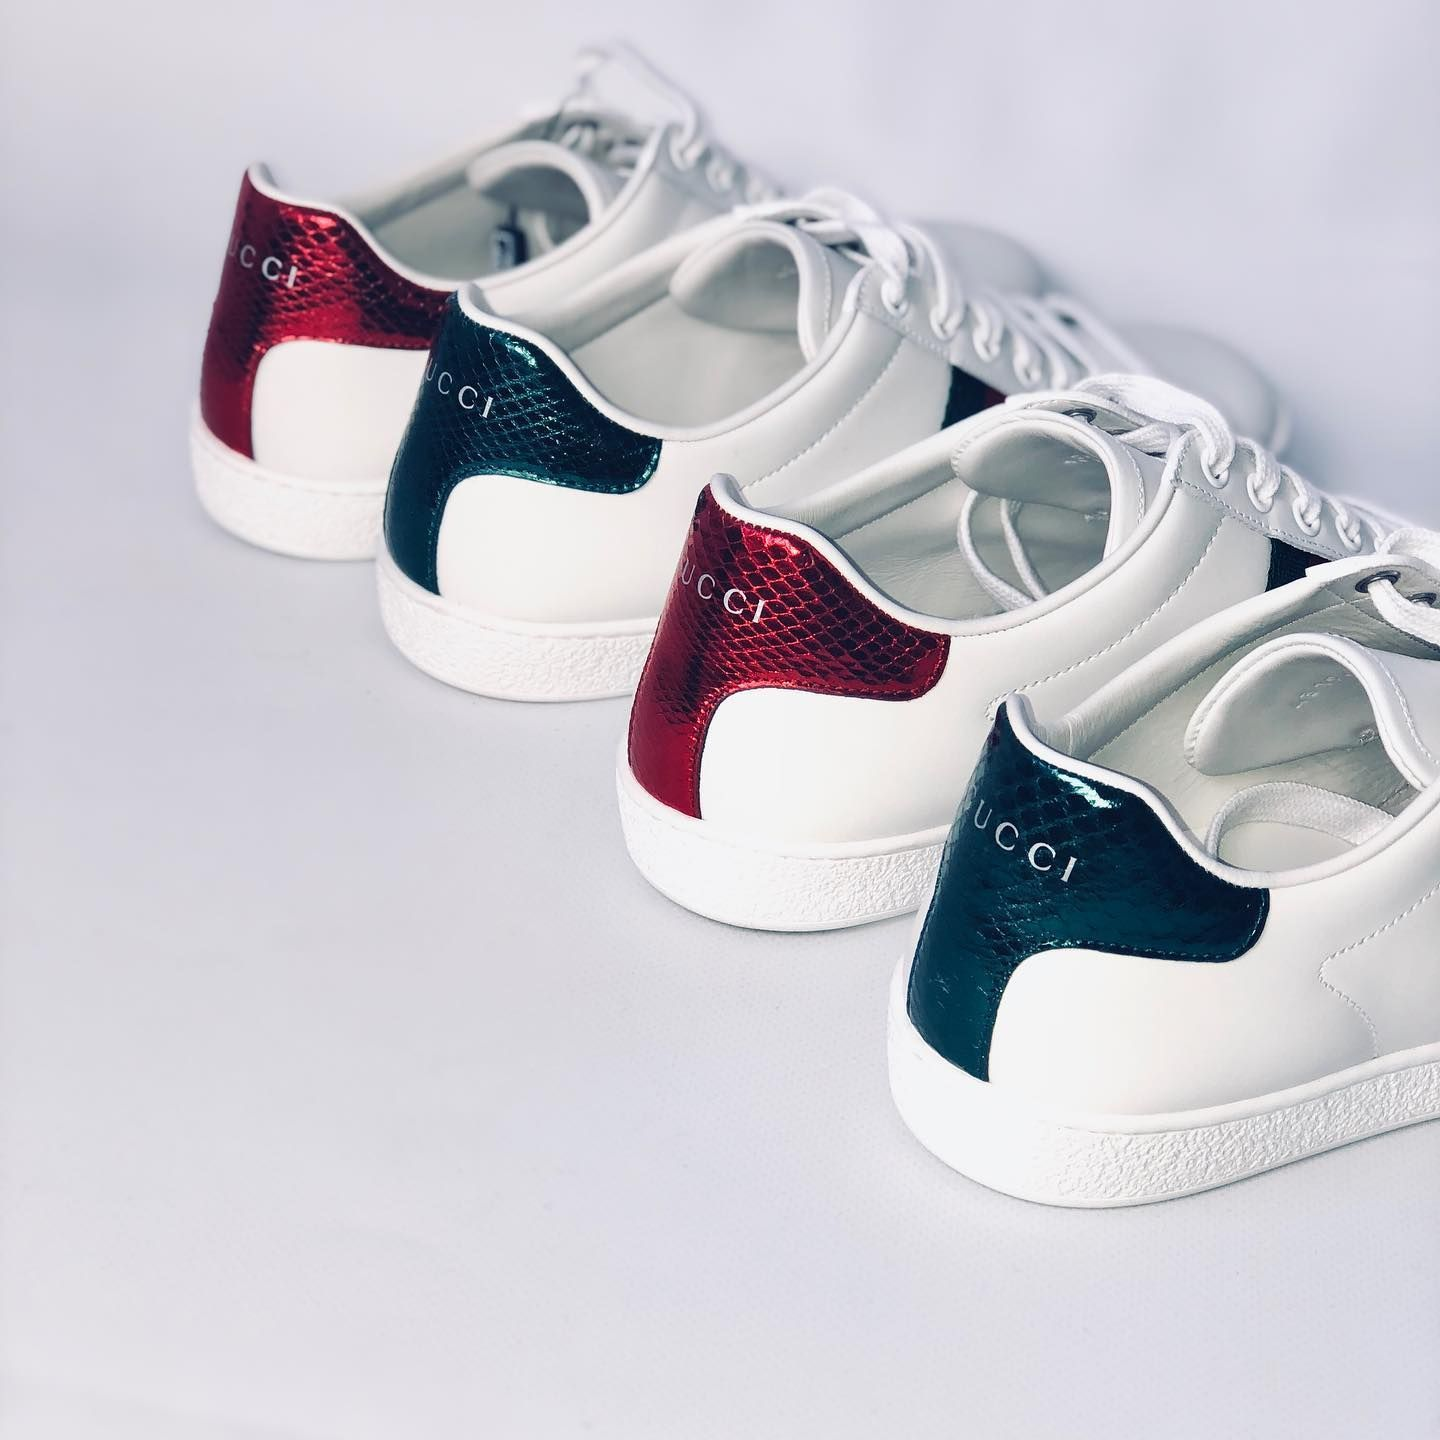 Just Say Gucci Flagowy Model Z Pszczola Kupicie Na Www B Luxury Pl Guccishoes Guccisneakers Bluxuryofficial Adidas Sneakers Sneakers Adidas Stan